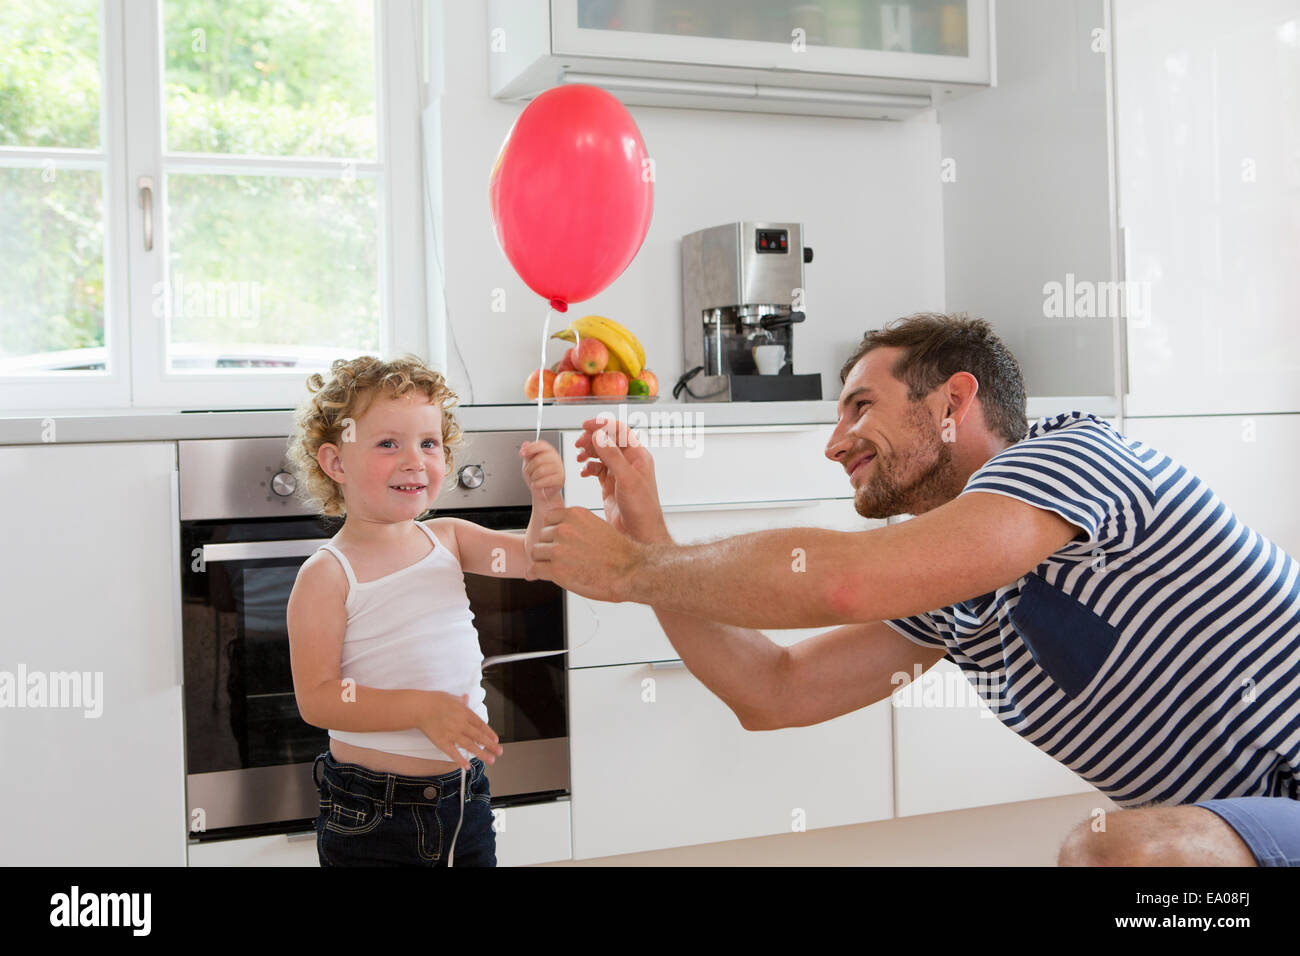 Girl holding balloon with father in kitchen - Stock Image